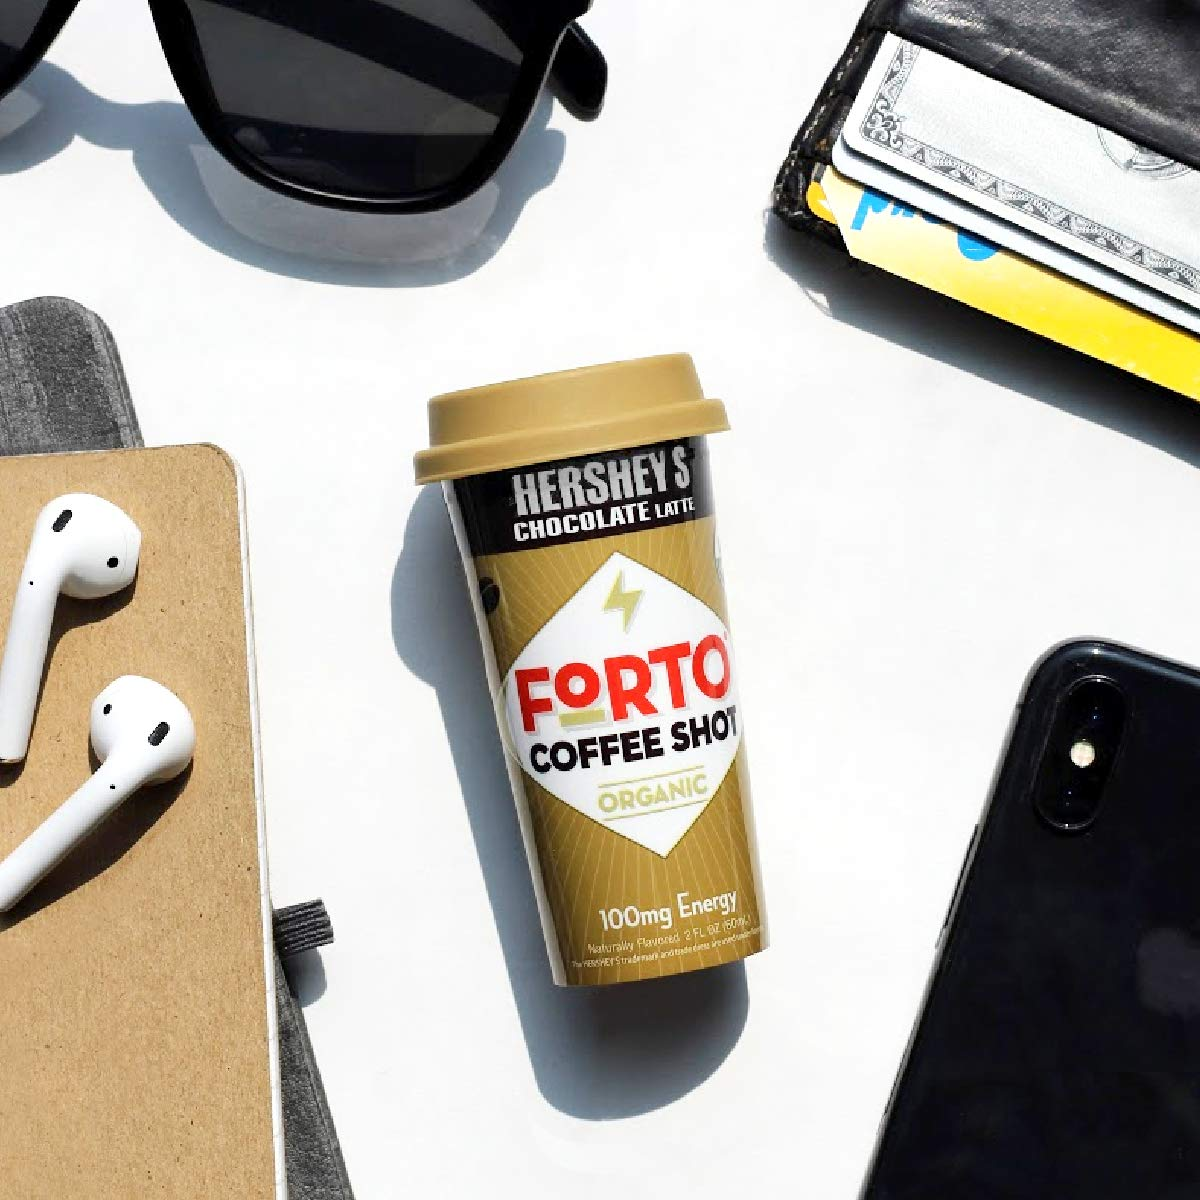 FORTO Coffee Shots - Variety Pack, Ready-to-Drink on the go, Cold Brew Coffee Shot - Fast Coffee Energy Boost, 2 Fl Oz, Pack of 6: Grocery & Gourmet Food